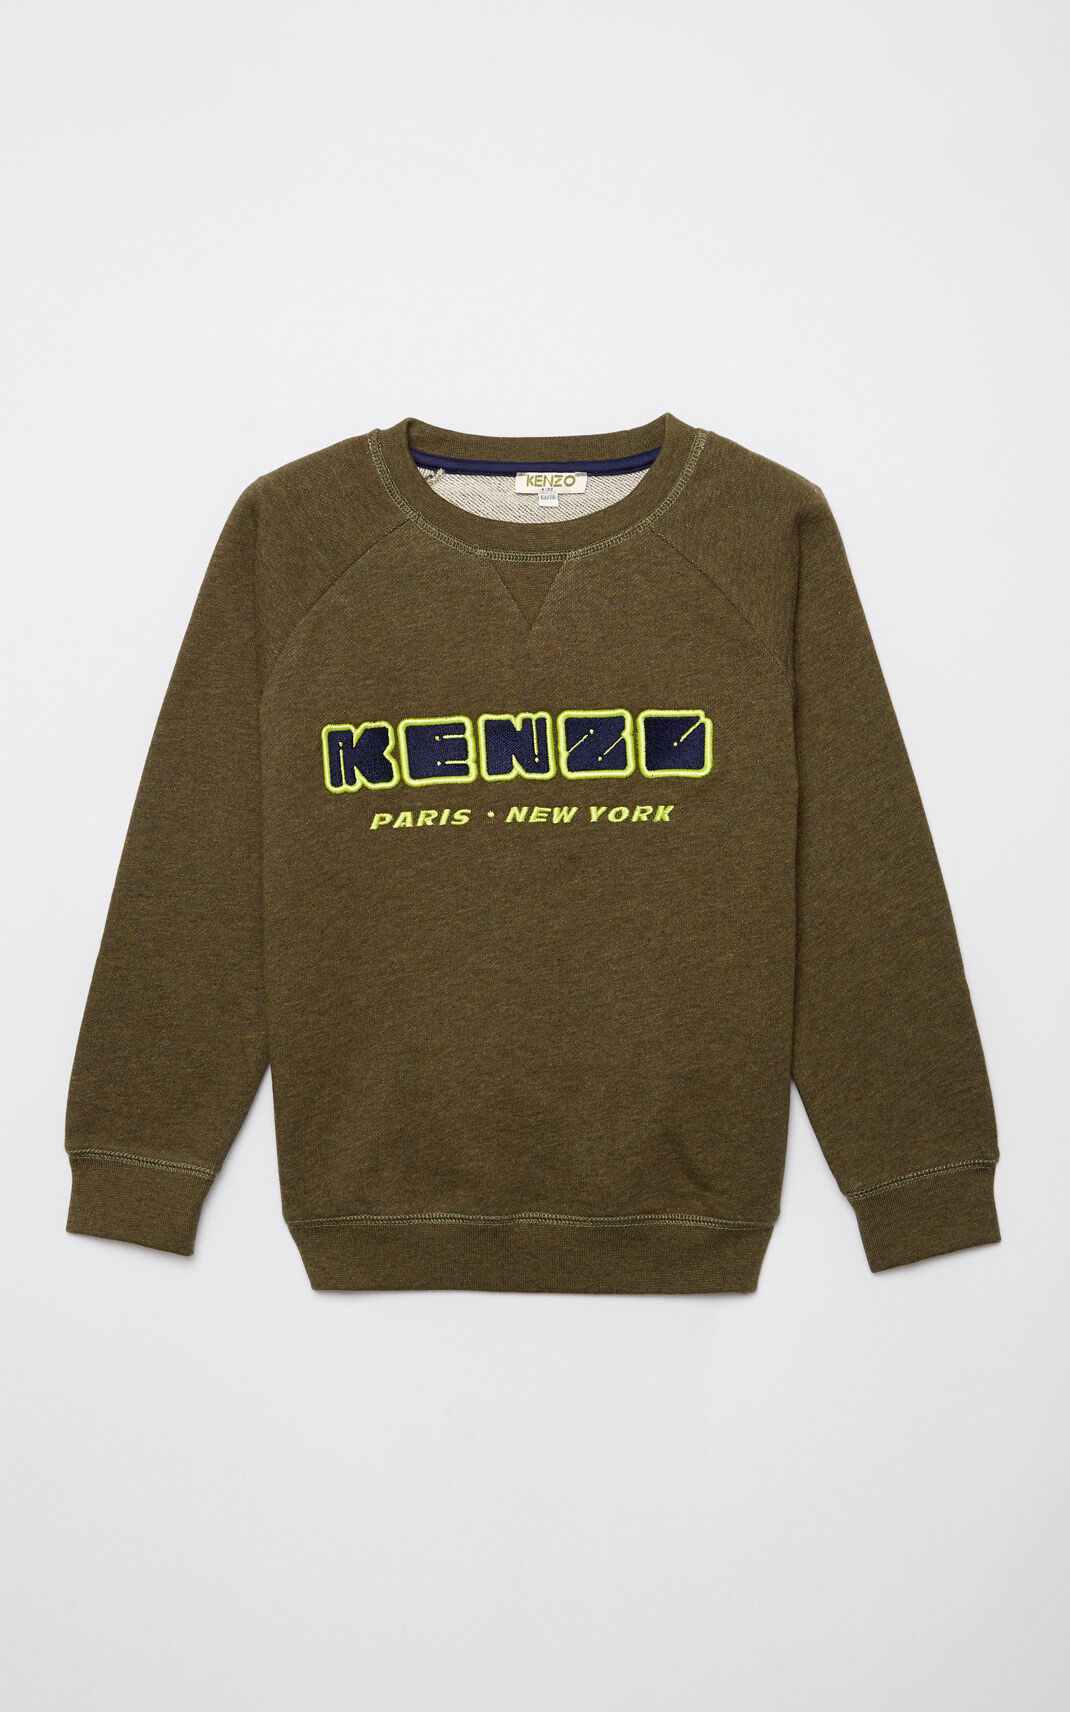 KHAKI KENZO Paris embroidered sweatshirt for women